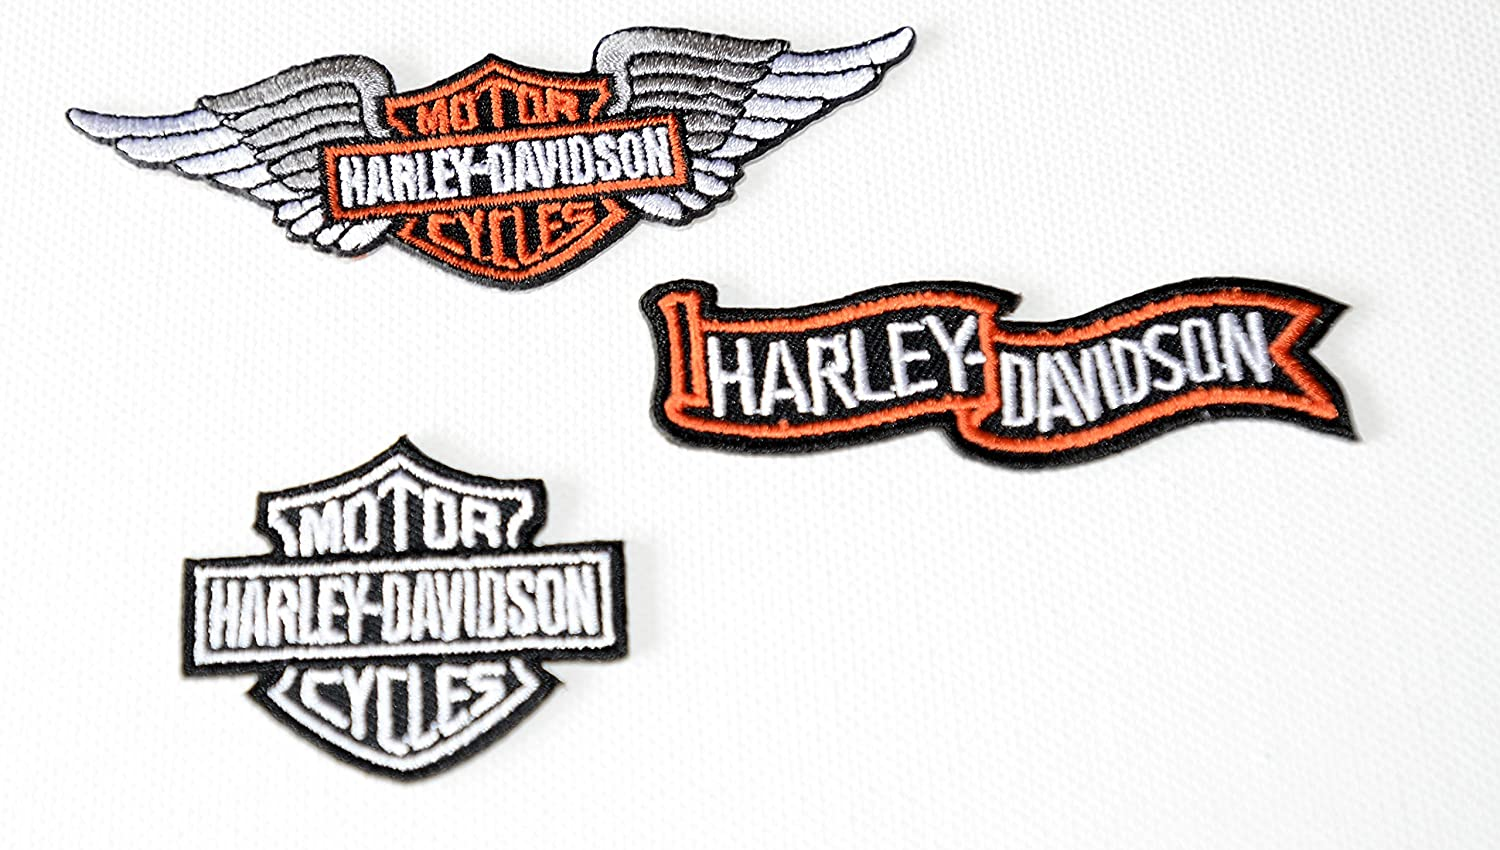 Harley Davidson Iron On Patch Born to be Wild Harley Davidson Motor Cycles Sent from u.k Next Day Delivery .Sold by Deal from Home